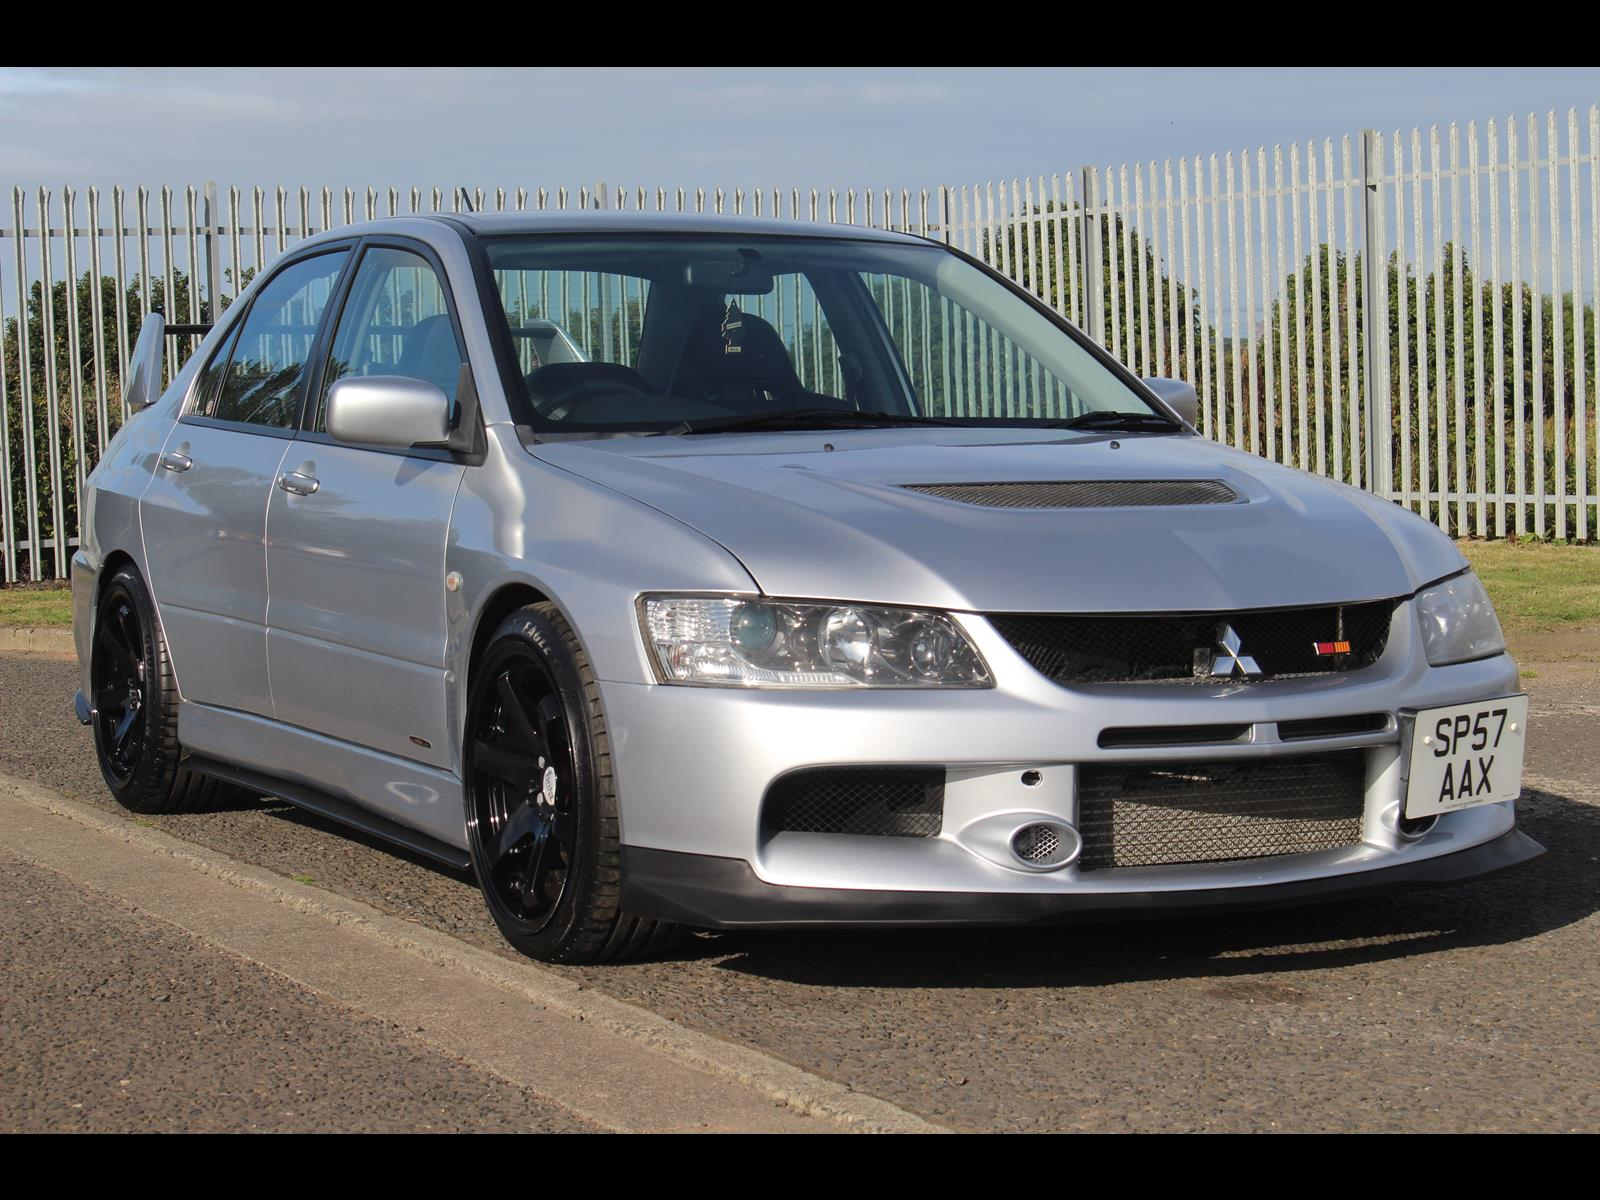 2007 mitsubishi lancer evo 9 fq340 uk forged engine 500 bhp 6 speed manual. Black Bedroom Furniture Sets. Home Design Ideas